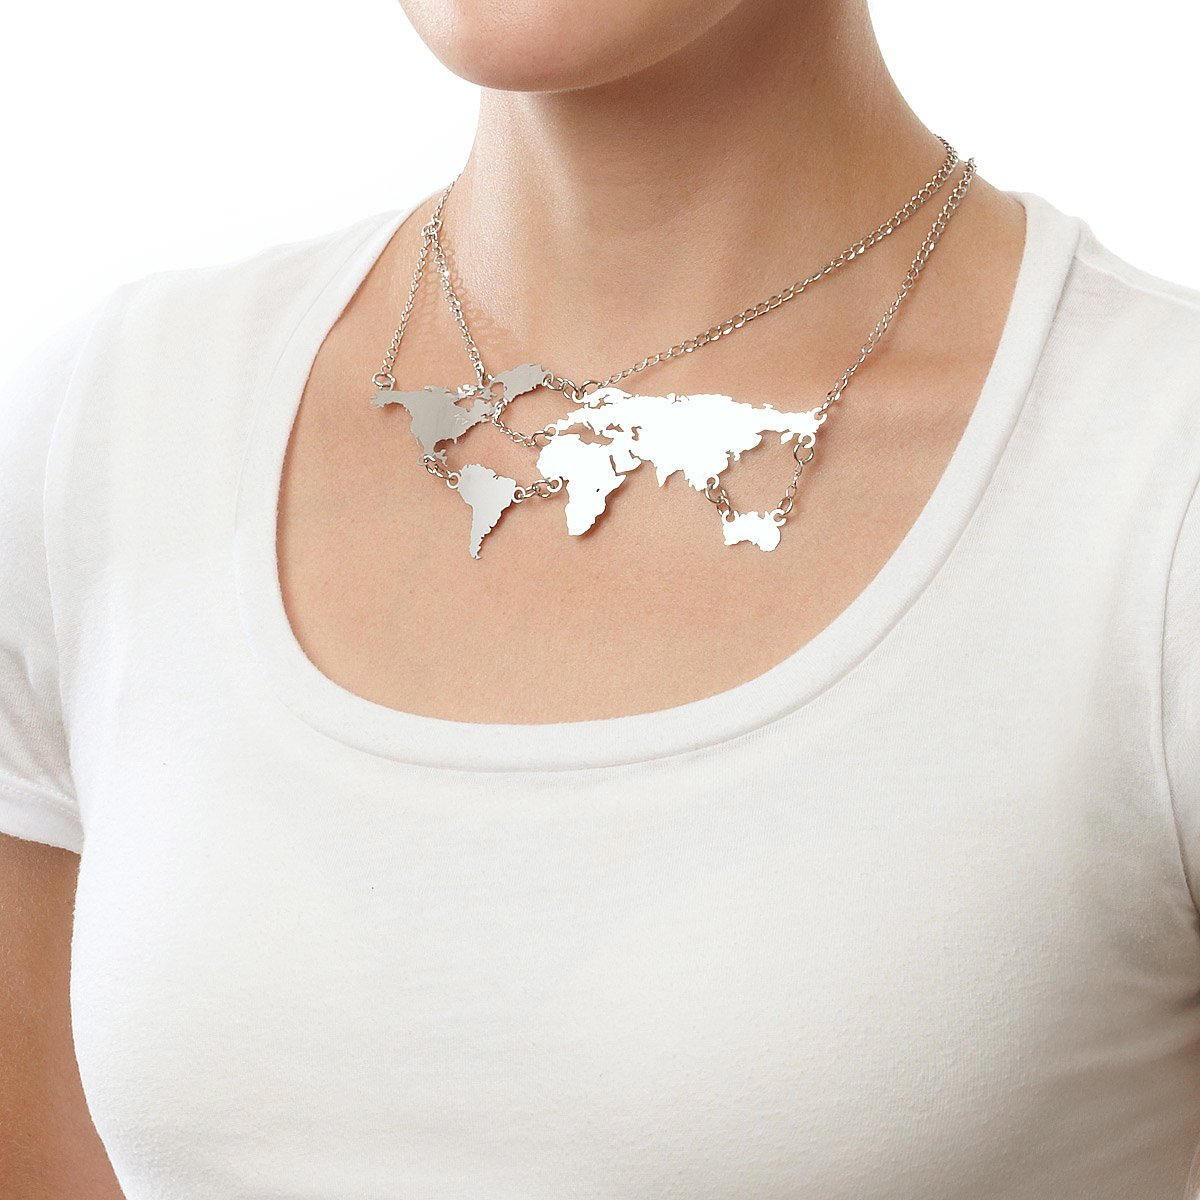 World links necklace silver silver world map jewelry uncommongoods world links necklace silver 2 thumbnail gumiabroncs Choice Image